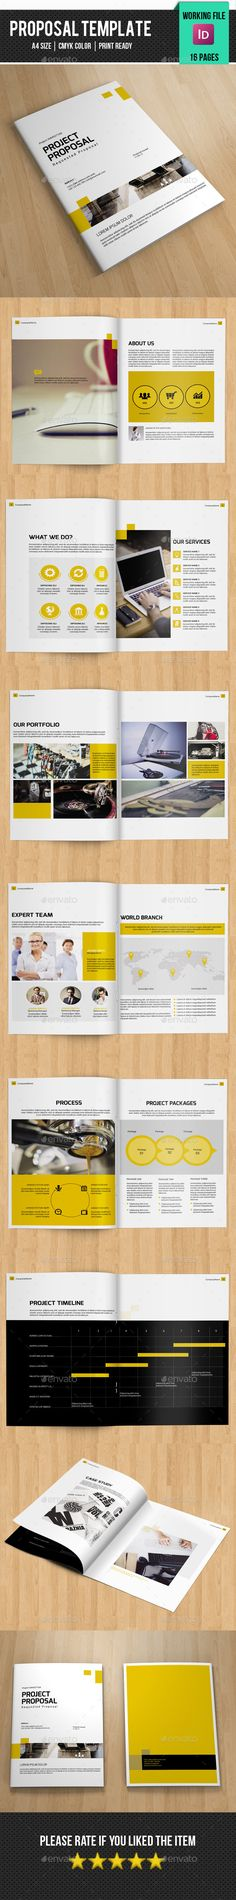 Proposal Stationery printing, Project proposal and Proposal - business project proposal template